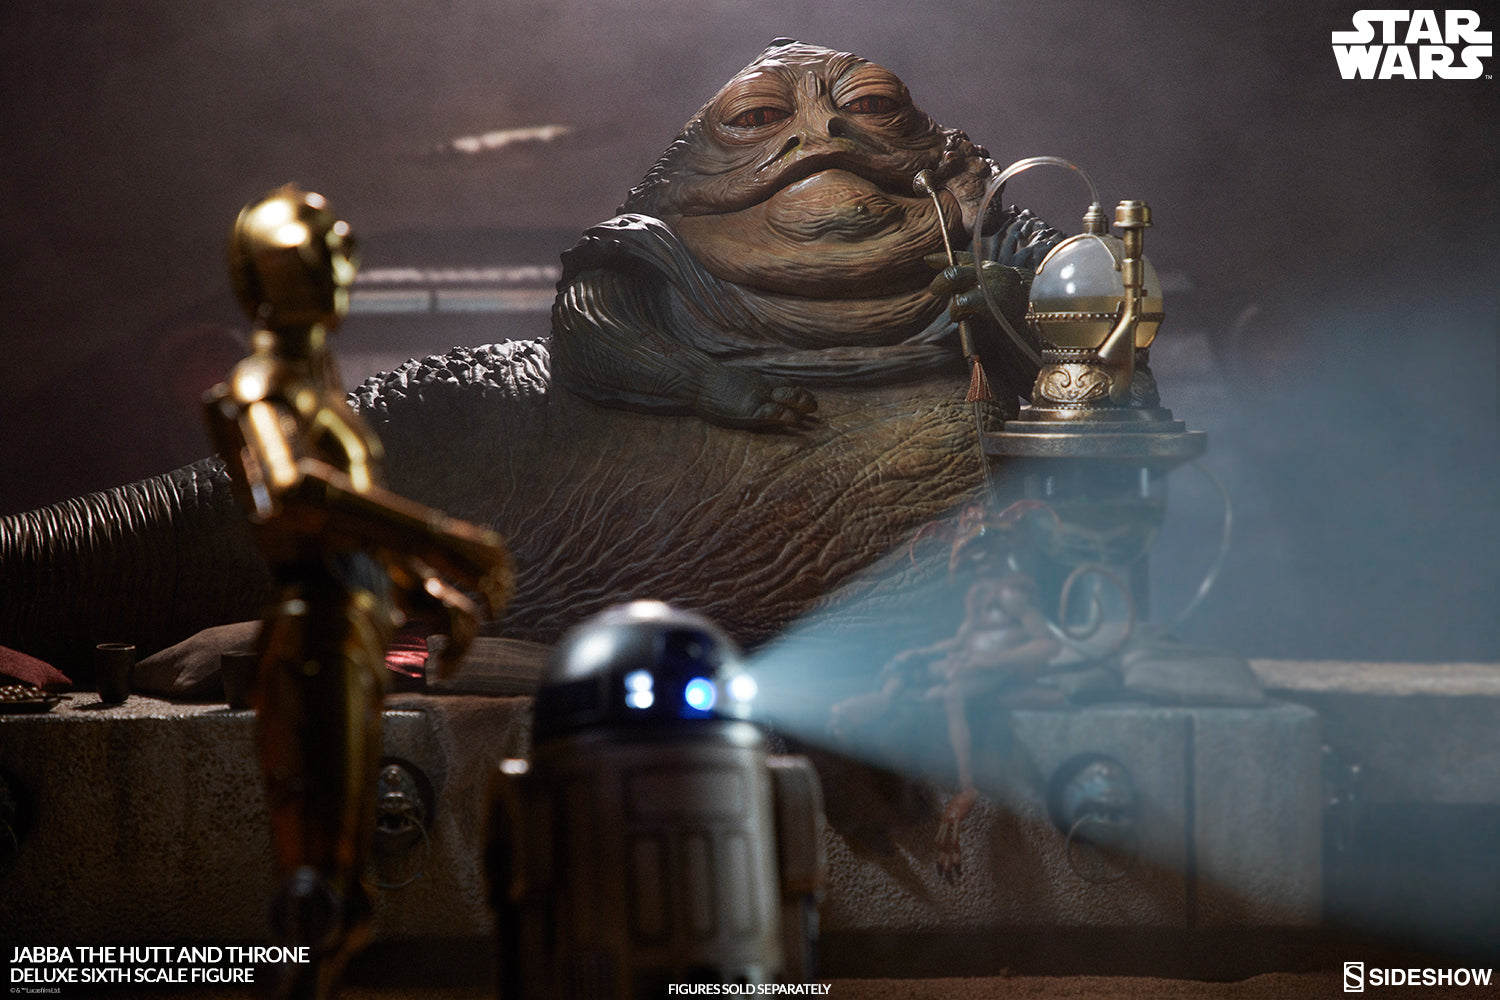 Sideshow Collectibles - Star Wars: Return of the Jedi - Jabba the Hutt and Throne Deluxe Sixth Scale Figure Set